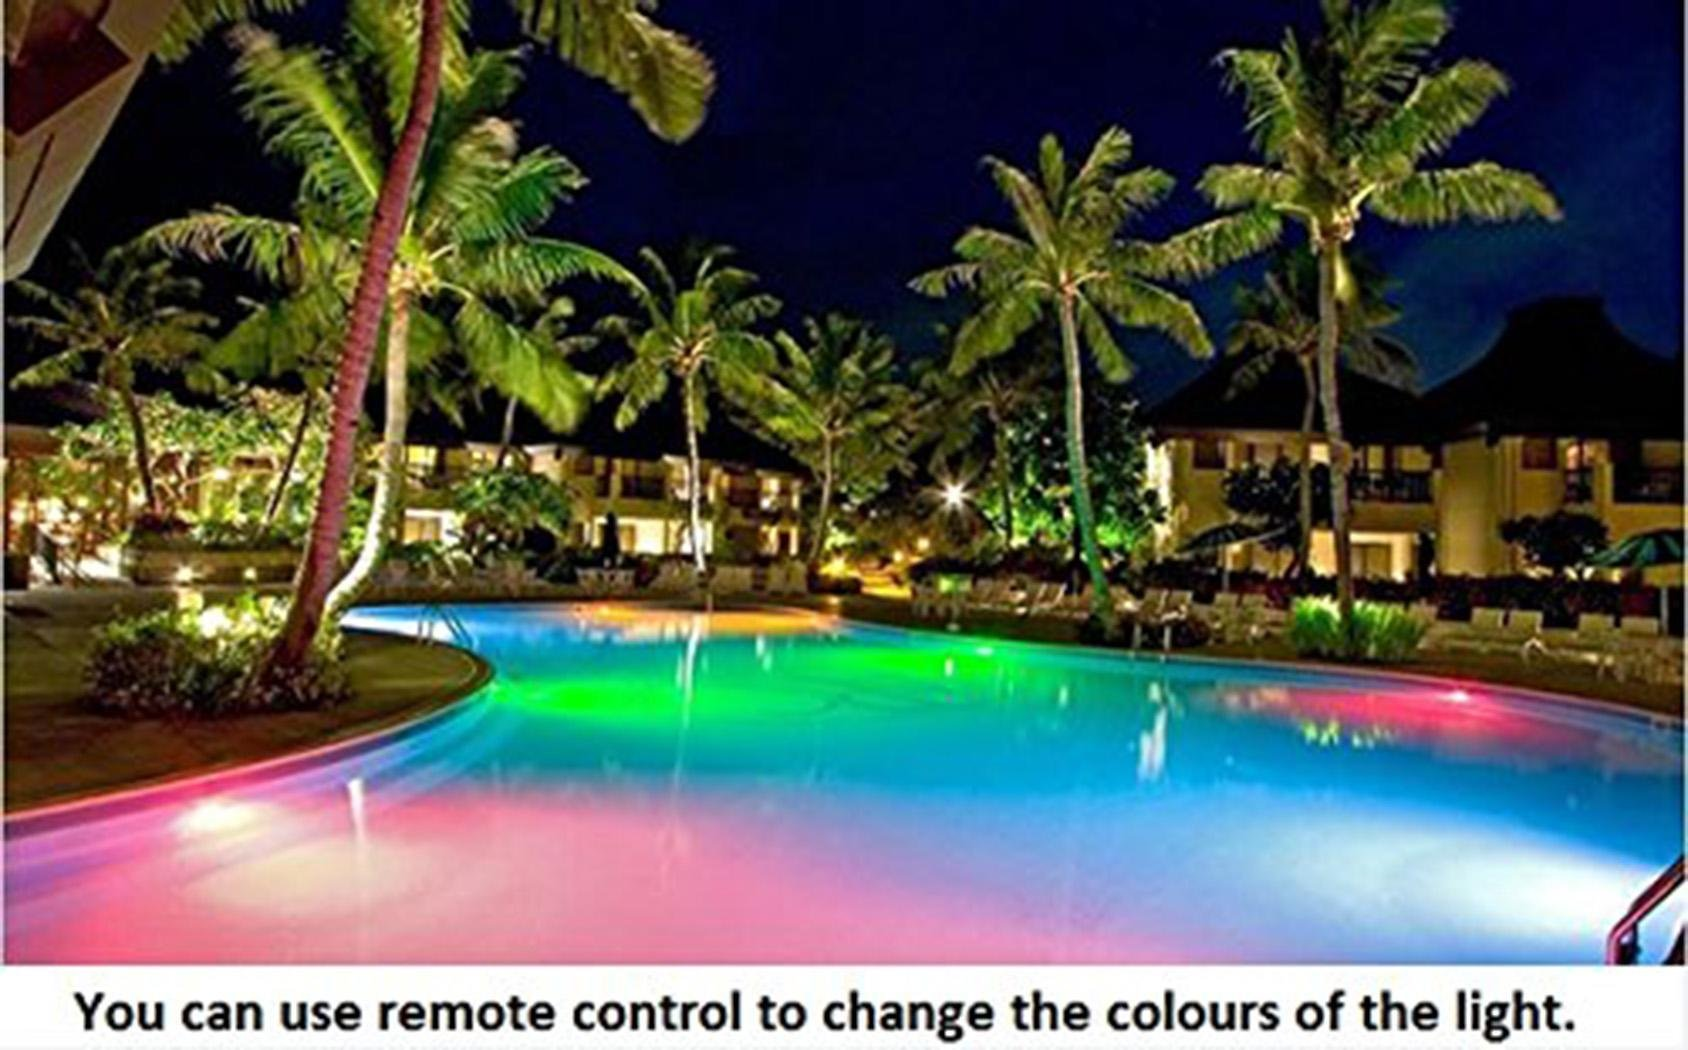 Swimming Pool LED Lights, 12V 7 Colors Fountains Lamp Underwater Swimming Pool Light with Remote Control